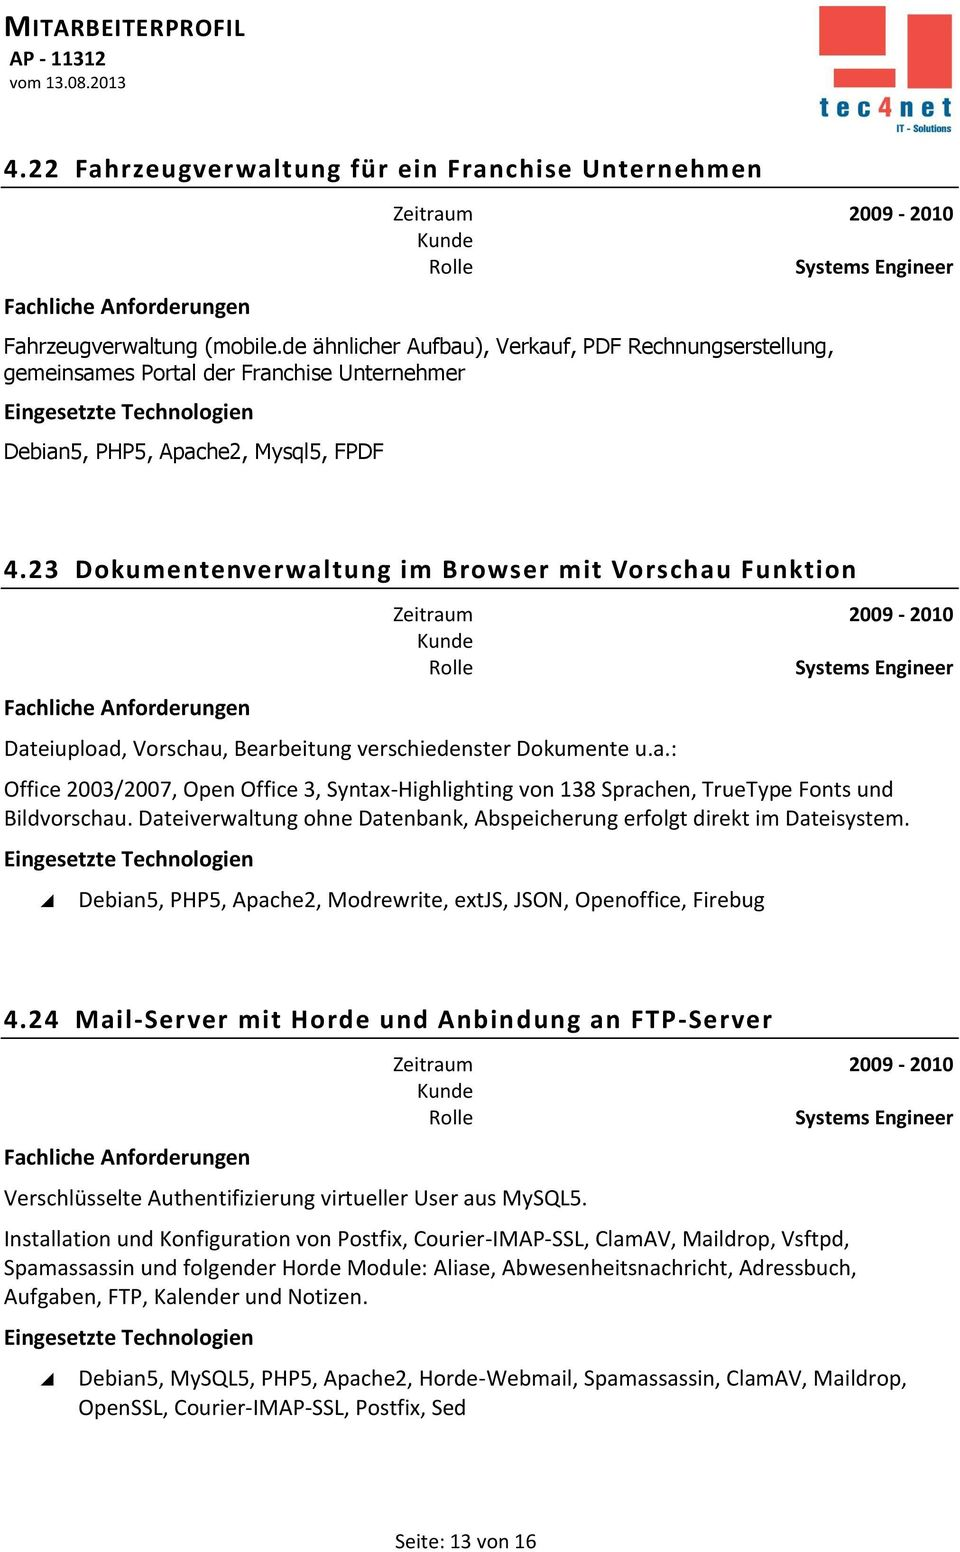 23 Dokumentenverwaltung im Browser mit Vorschau Funktion Dateiupload, Vorschau, Bearbeitung verschiedenster Dokumente u.a.: Office 2003/2007, Open Office 3, Syntax-Highlighting von 138 Sprachen, TrueType Fonts und Bildvorschau.